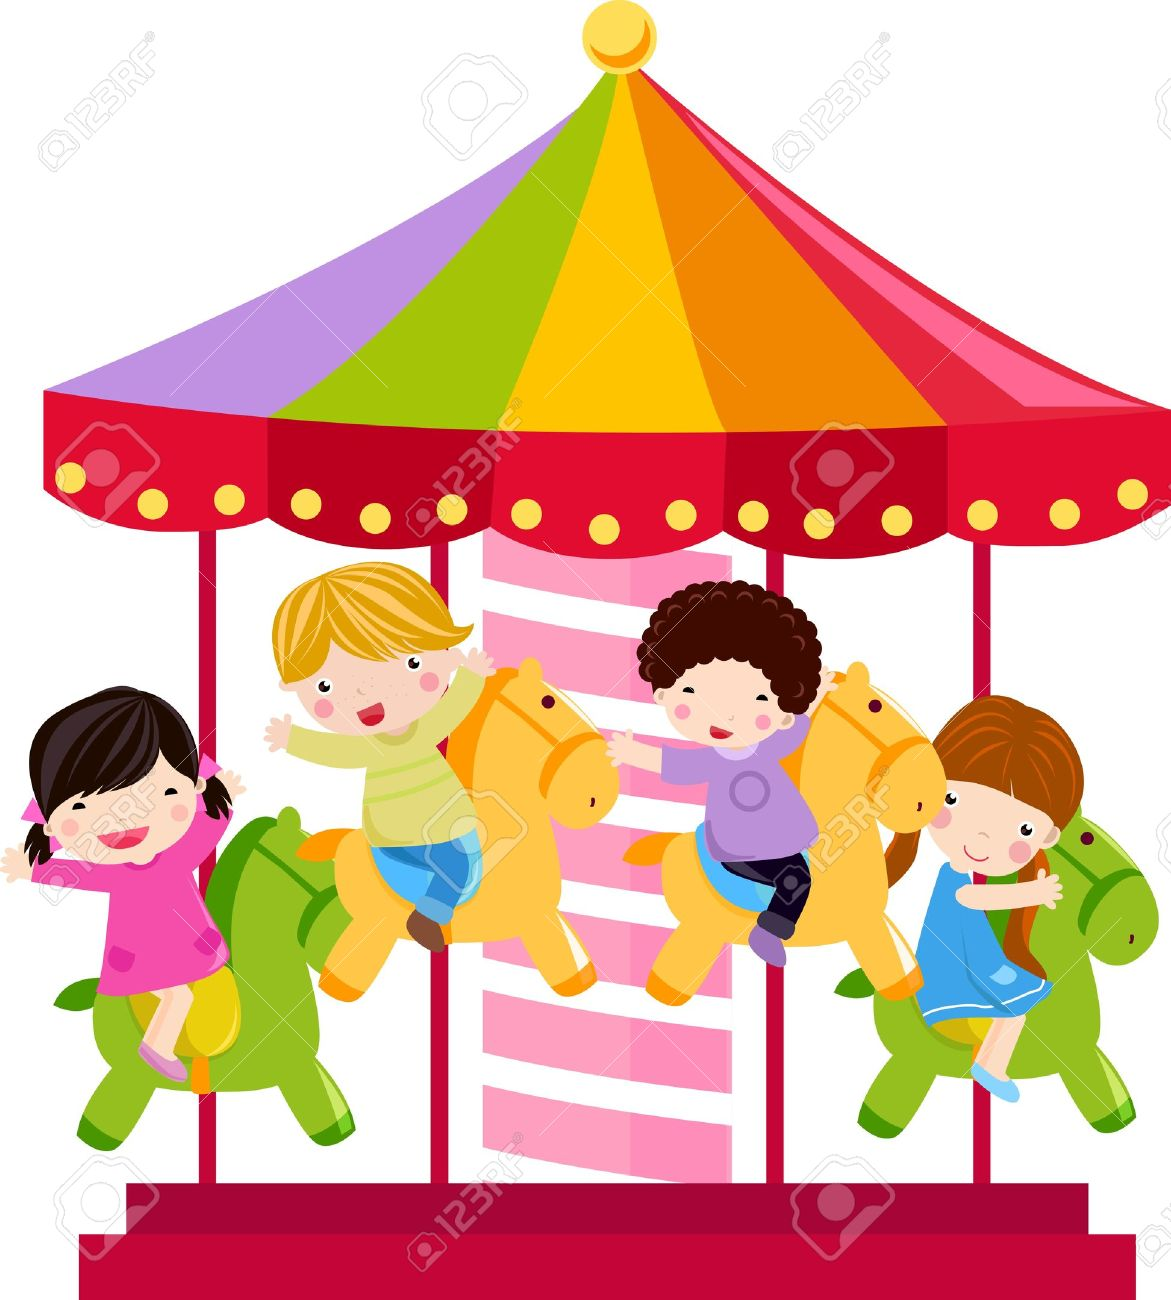 Image result for carousel free clipart